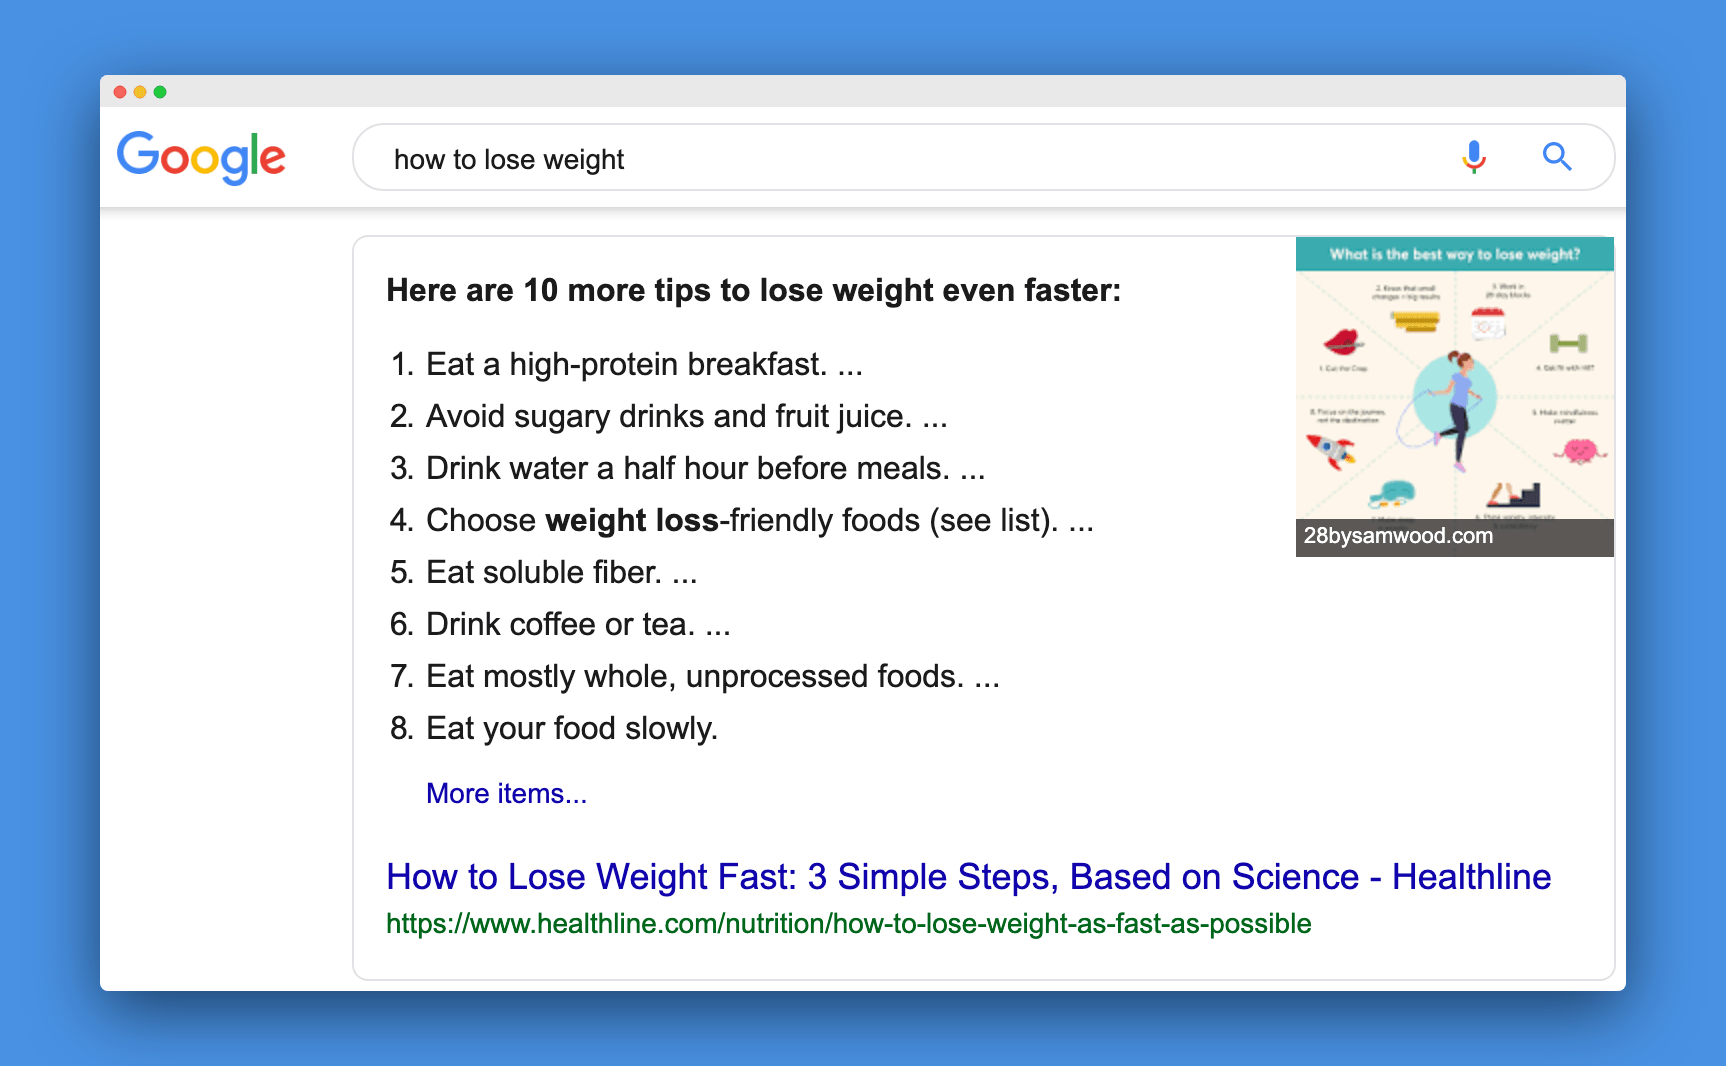 how to lose weight image